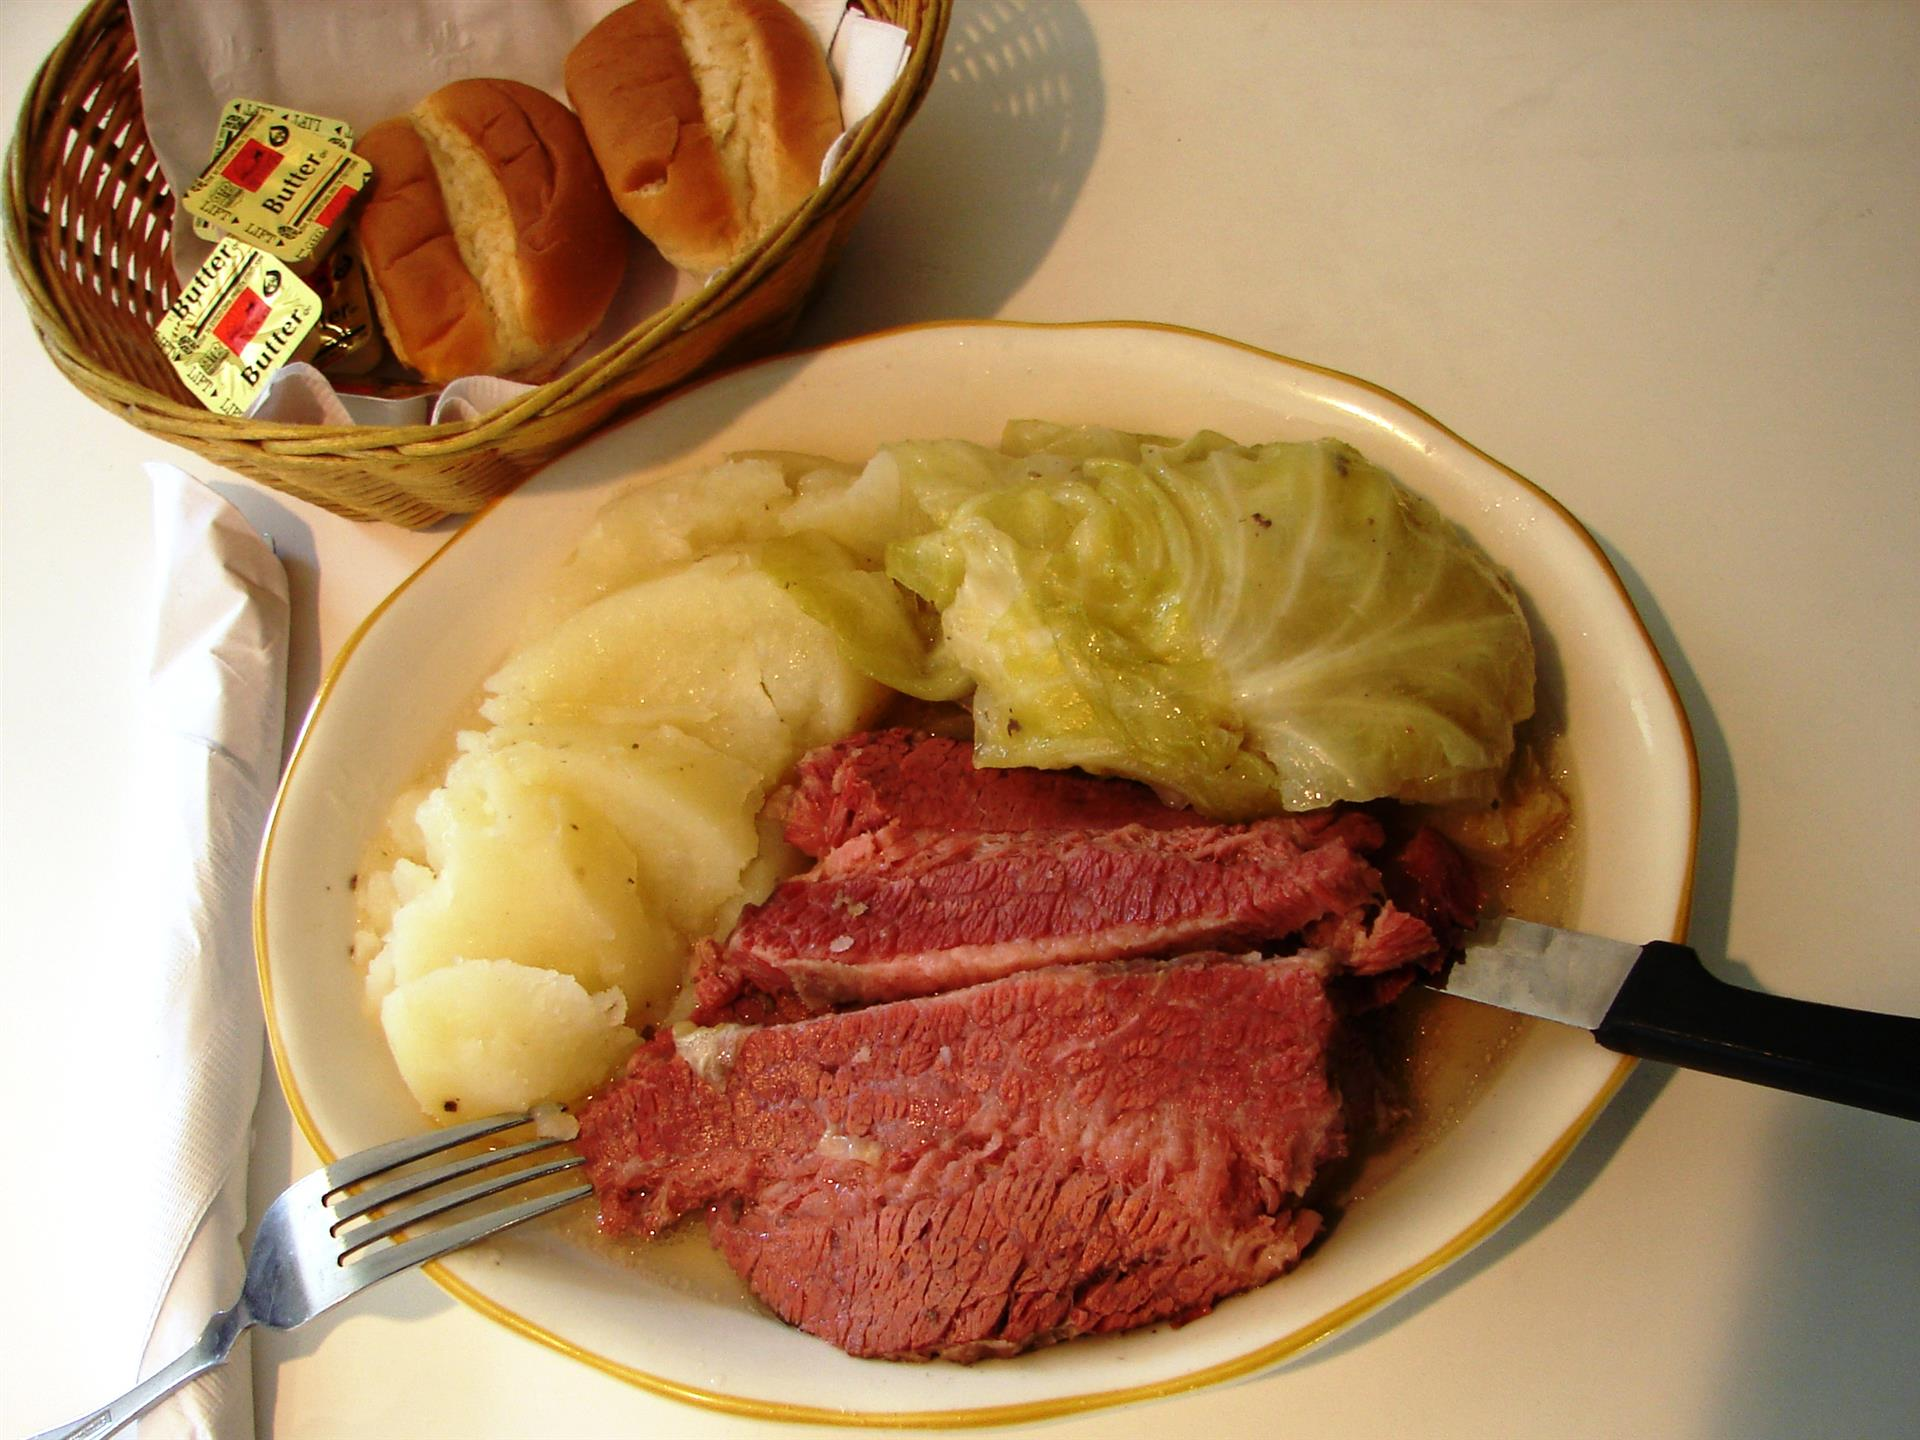 Corned beef and cabbage with mashed potatoes, side of dinner rolls in basket.